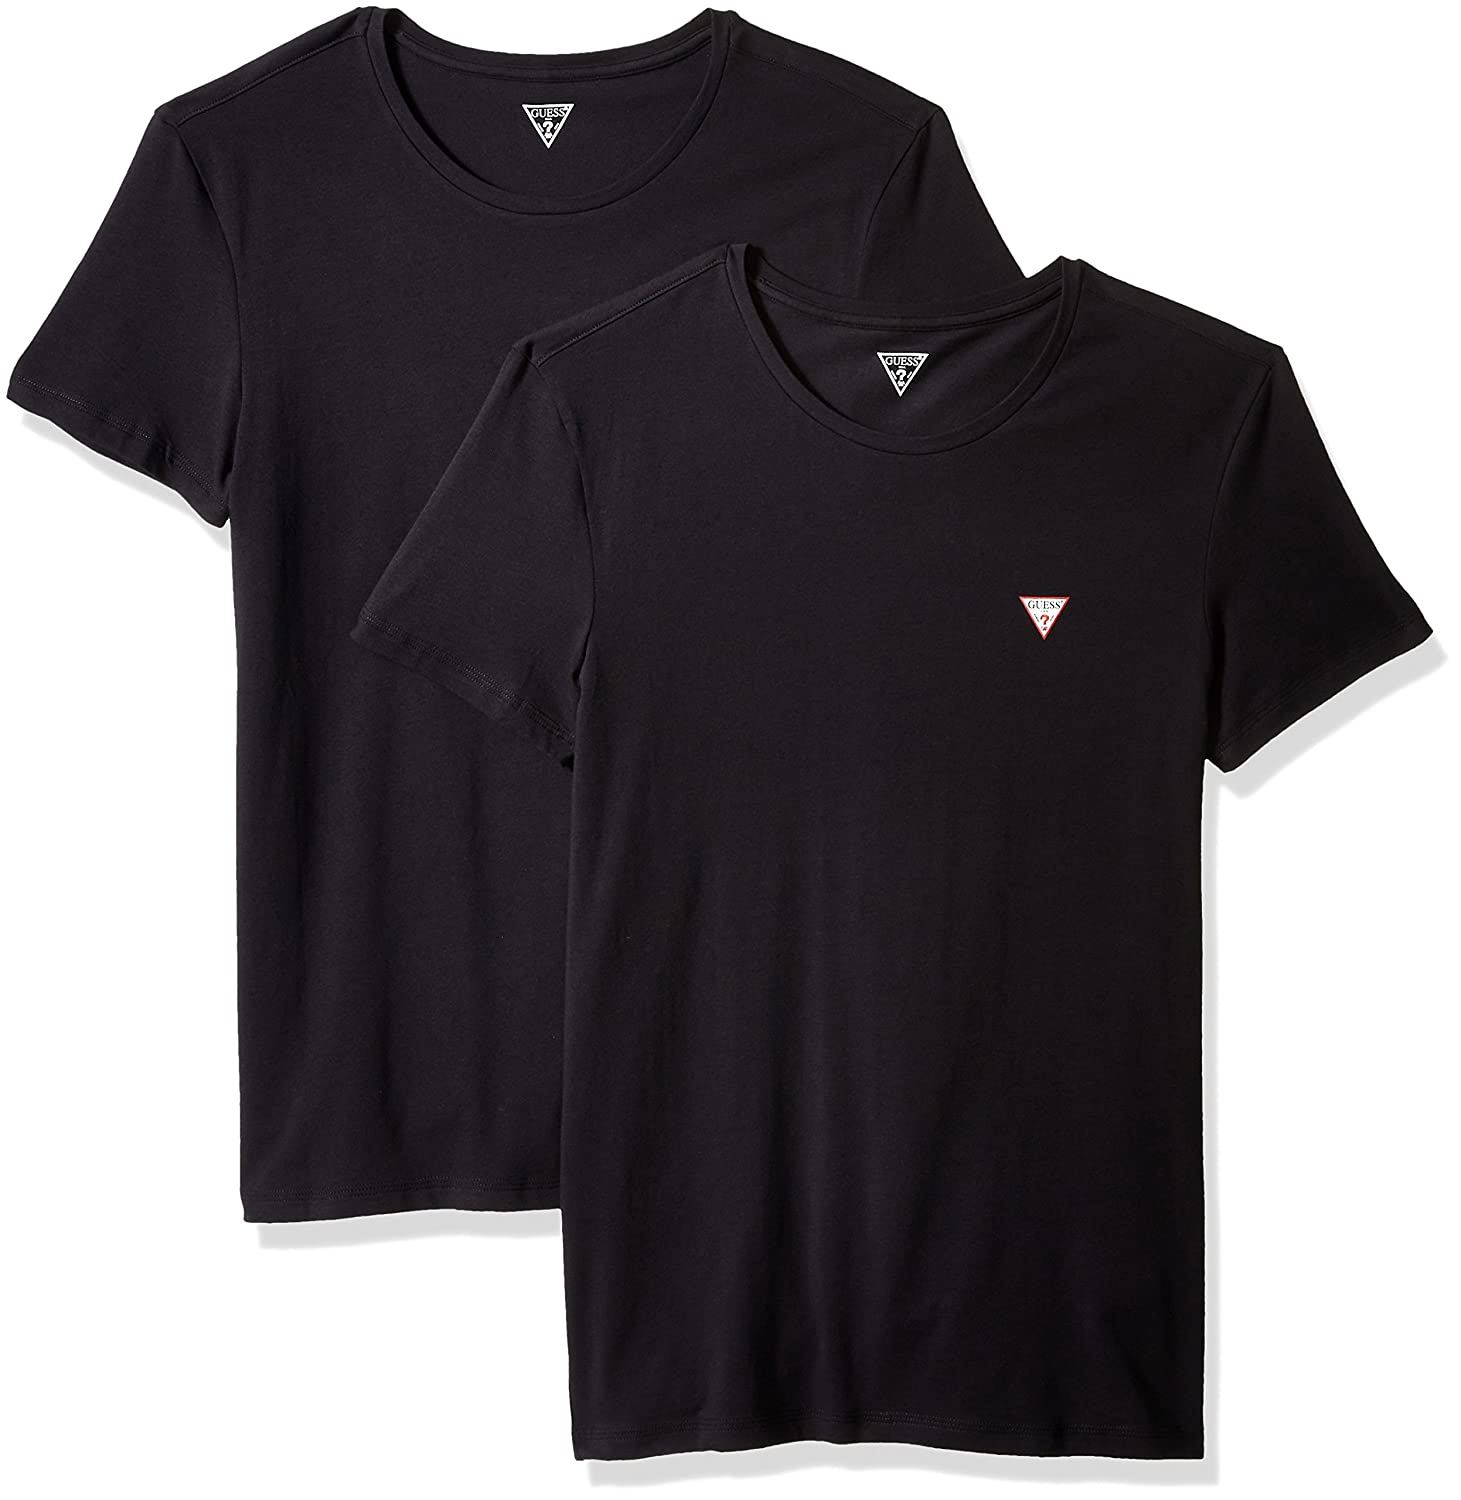 21fcd754b56b GUESS Men's Triangle Logo Crew Neck 2 Pack T-Shirt at Amazon Men's Clothing  store: